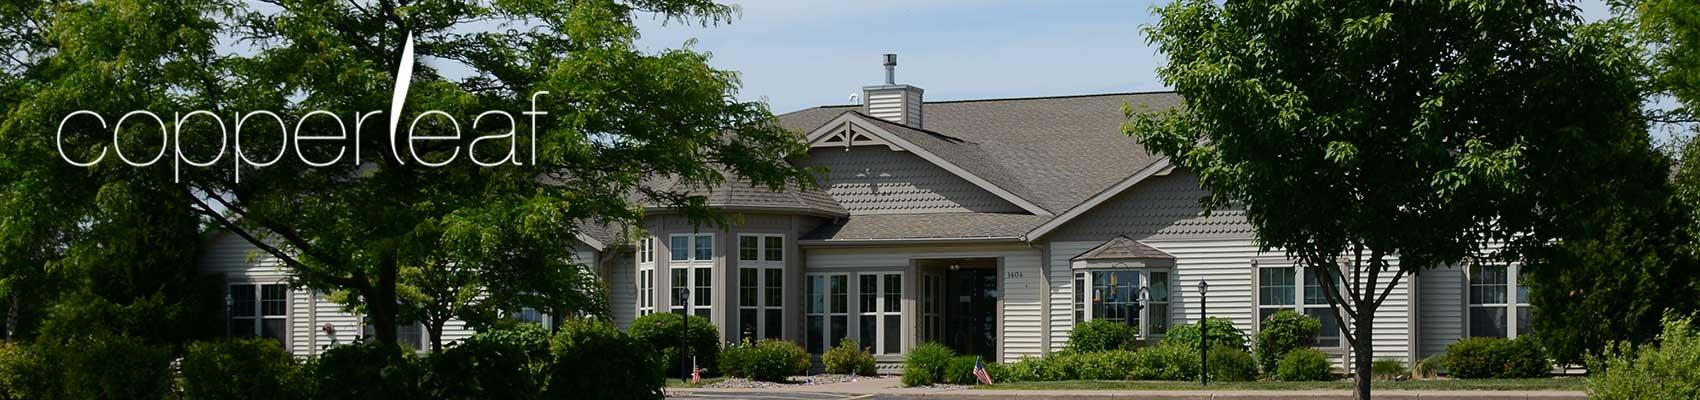 assisted living facilities in Van Dyne Wisconsin Fond du Lac County